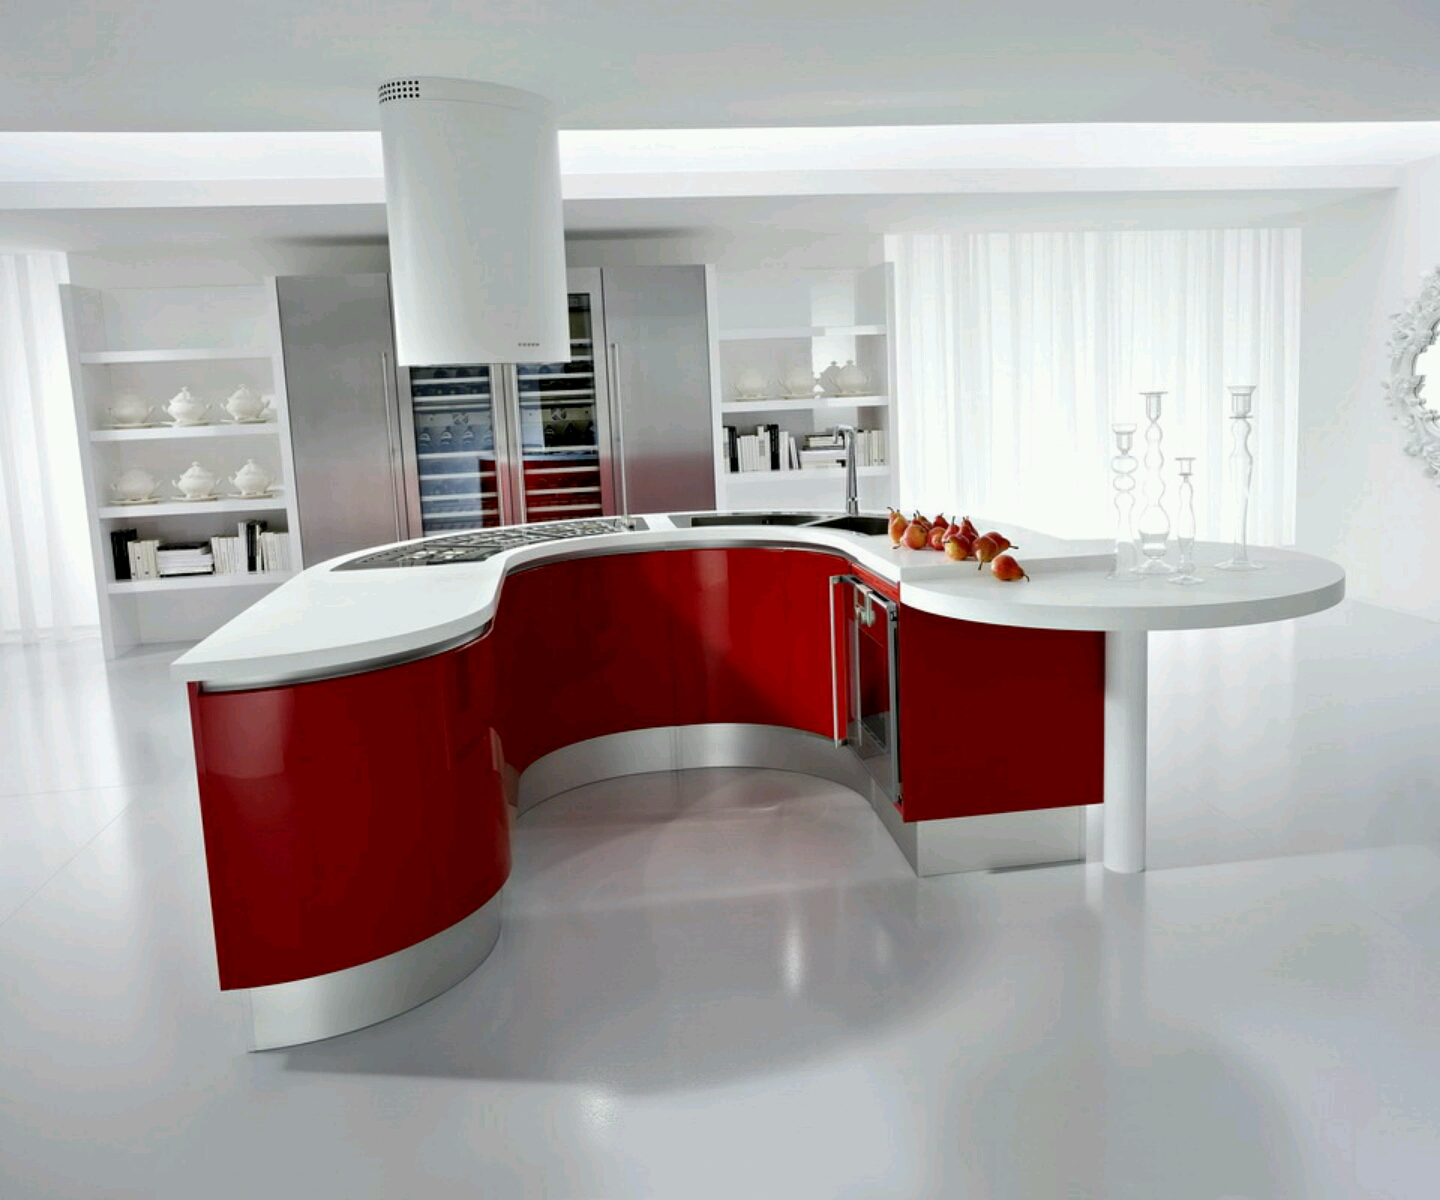 Modern kitchen cabinets designs ideas furniture gallery for Mordern kitchen designs